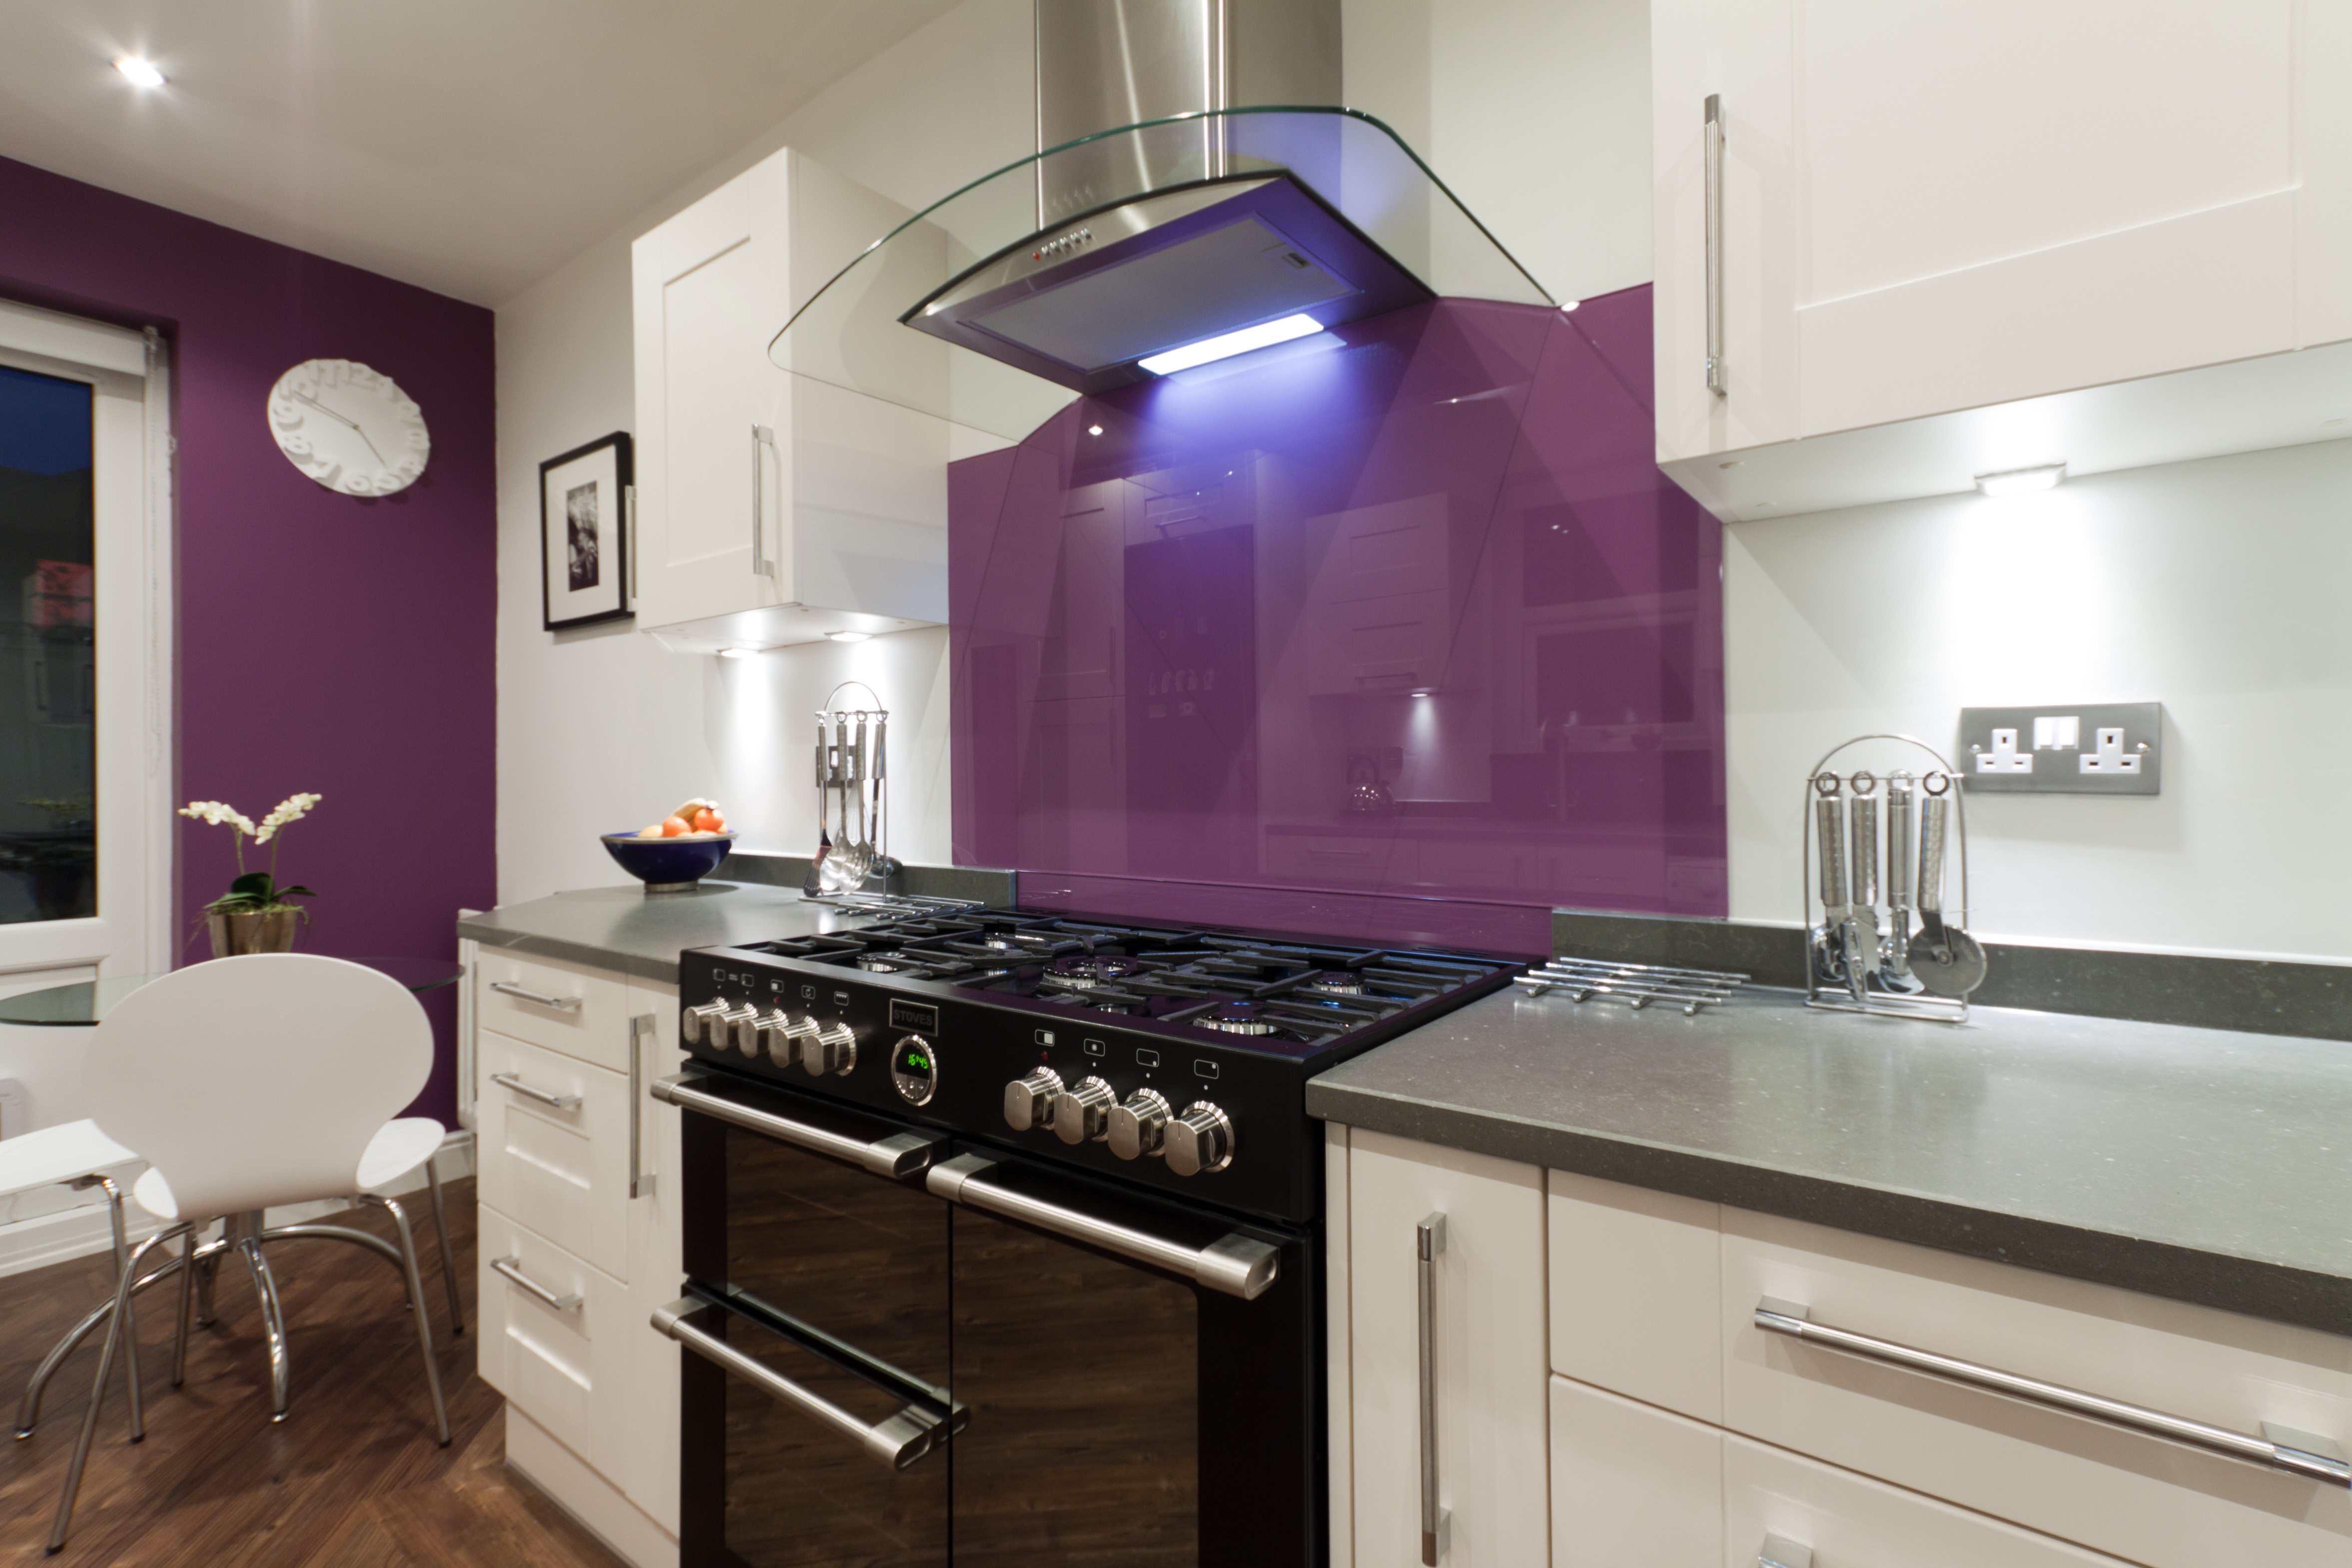 Kitchen Showroom Manchester Kitchen Design Rsi Kitchen U0026 Bath Home Rsi Kitchen U0026